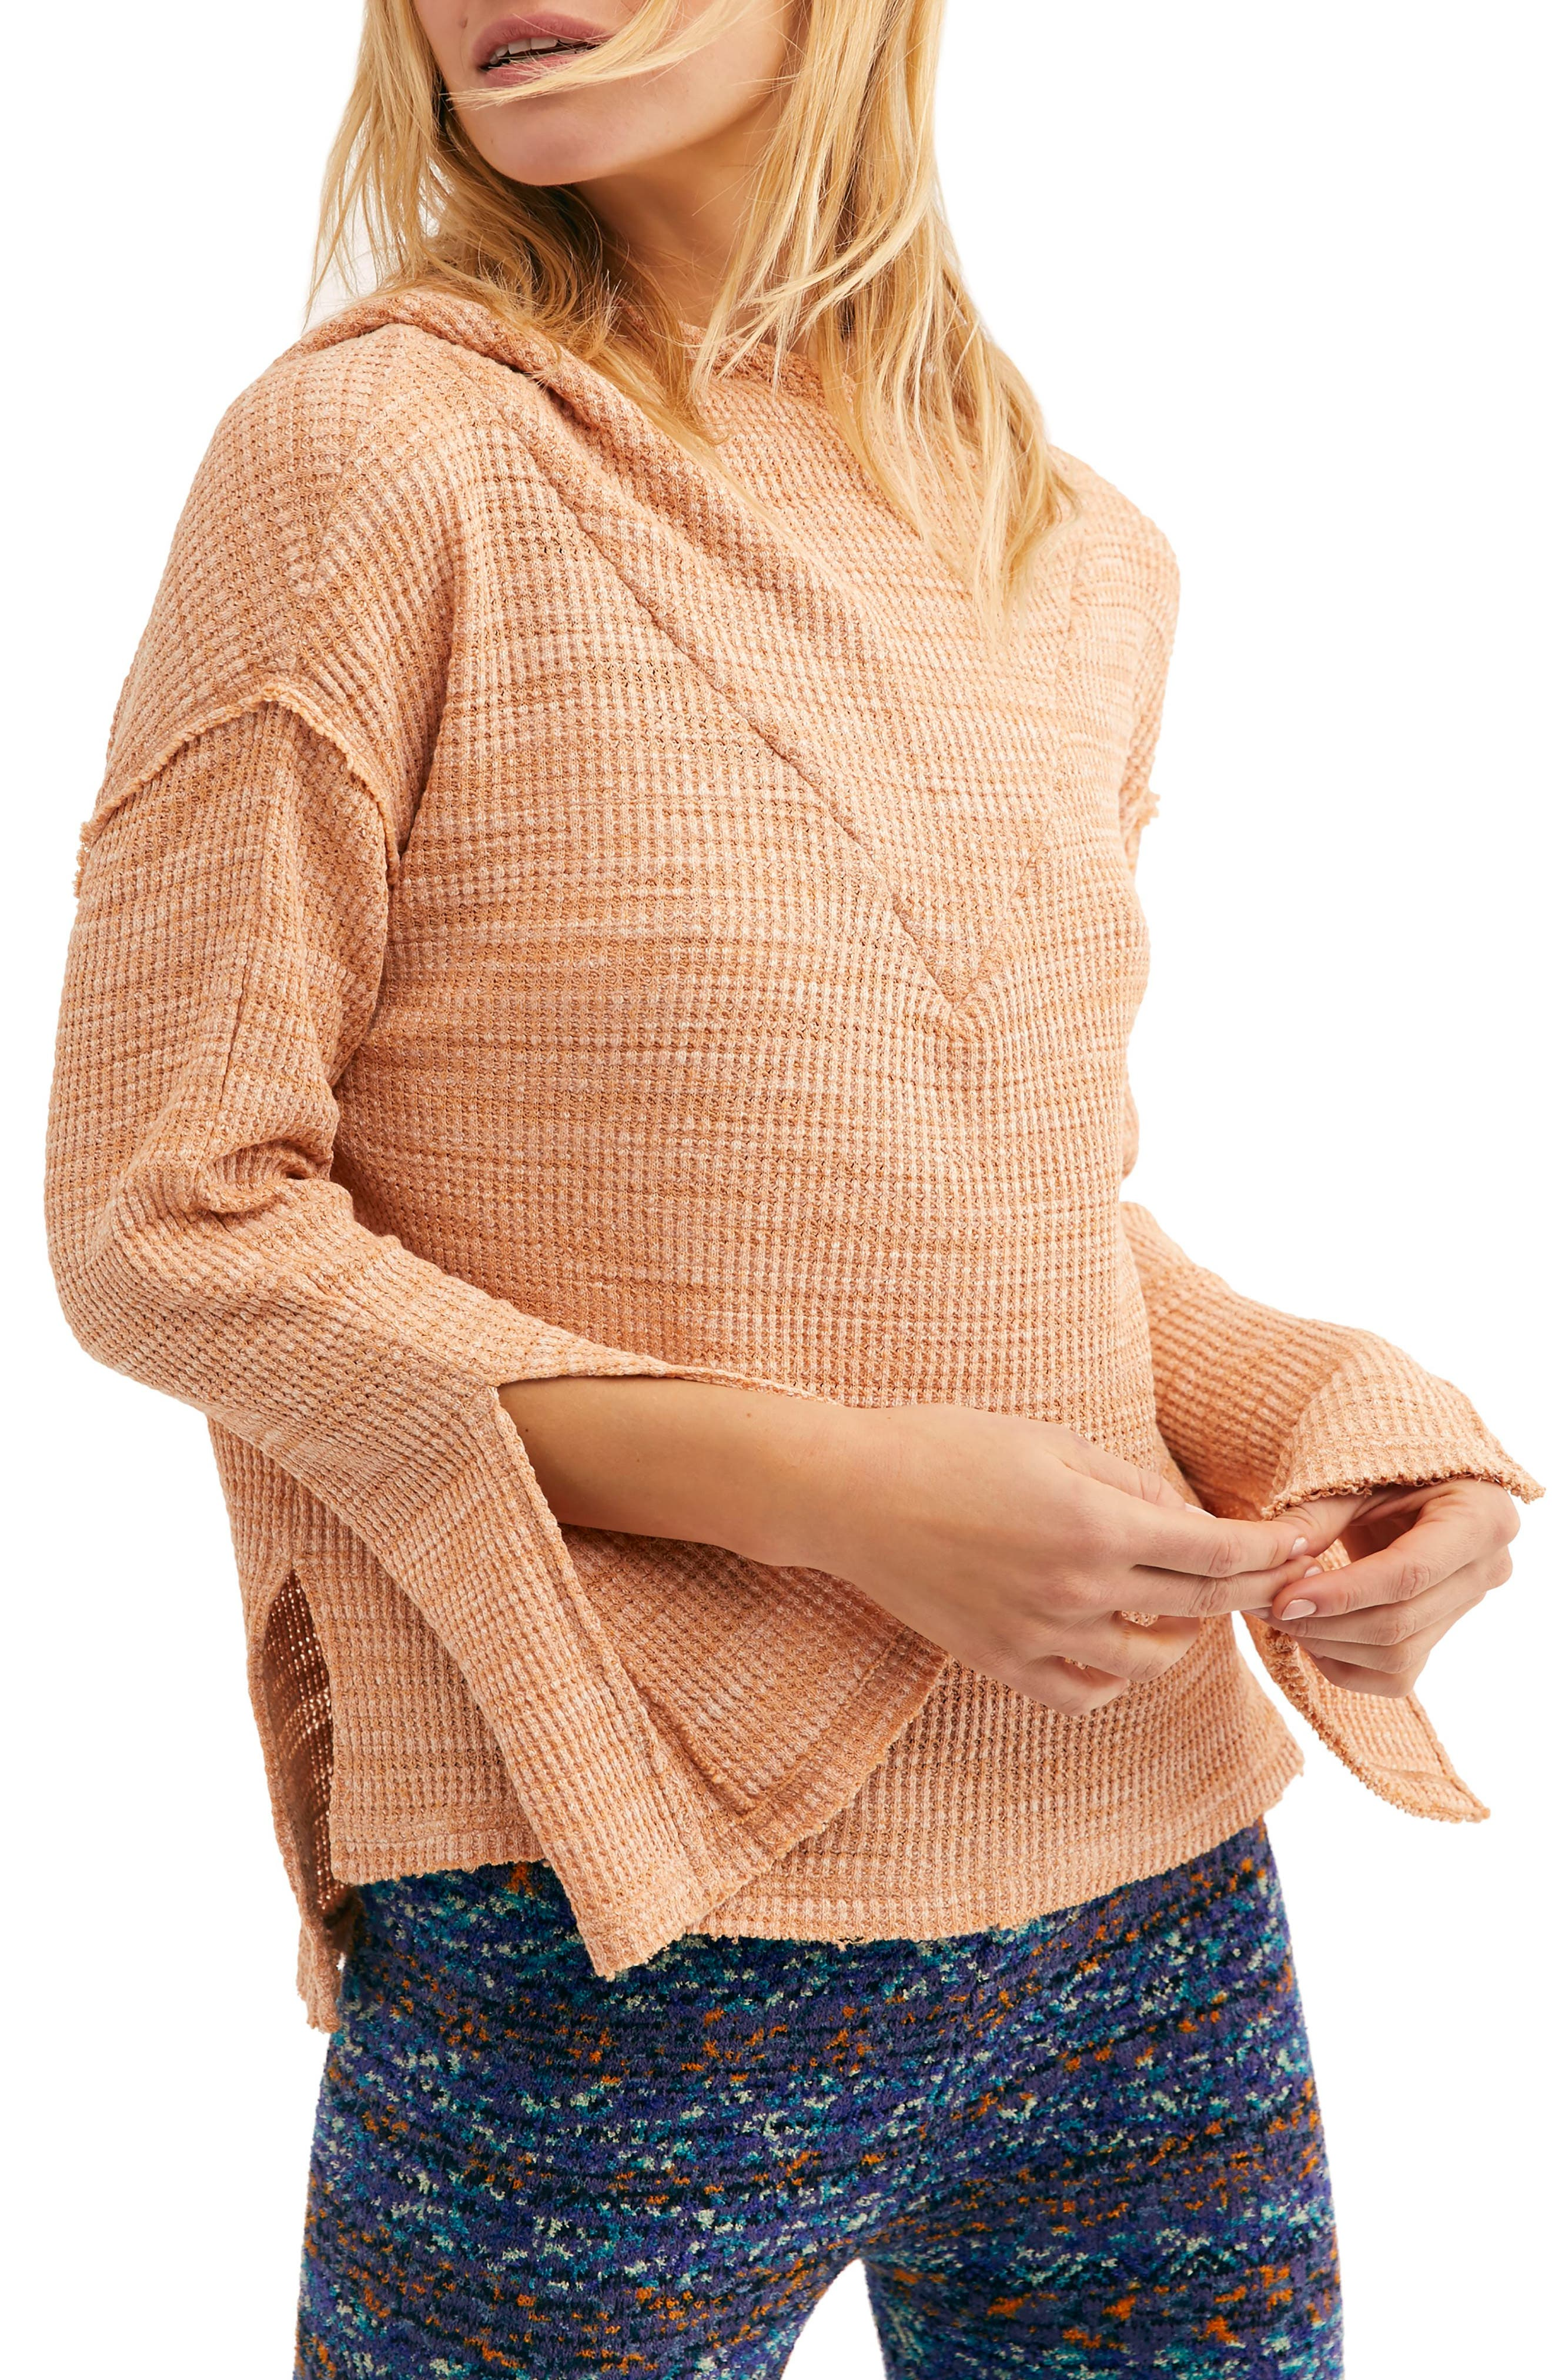 FREE PEOPLE, Endless Summer by Free People Hooded Knit Top, Main thumbnail 1, color, ORANGE